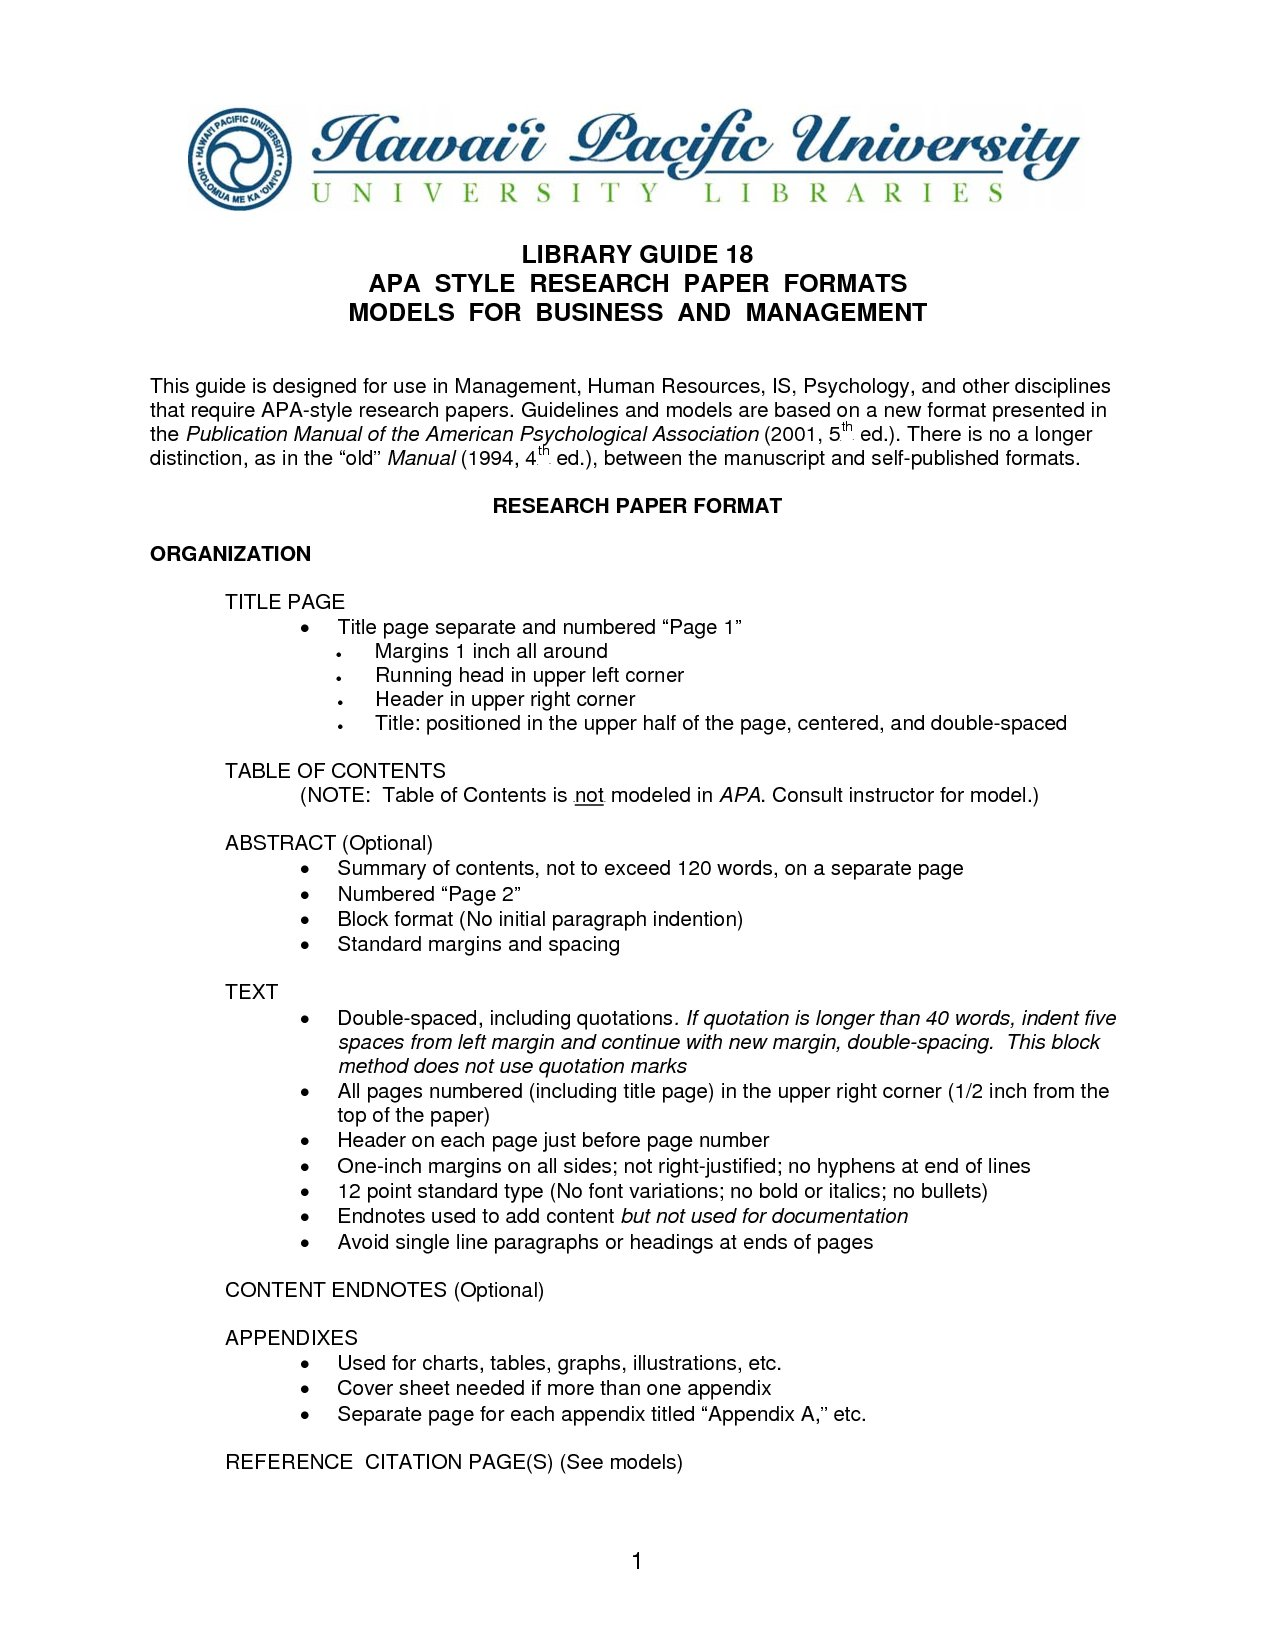 013 Research Statement Example Template Dgpr1ovi Paper Format For Apa Top A Style Sample Outline Introduction - Full